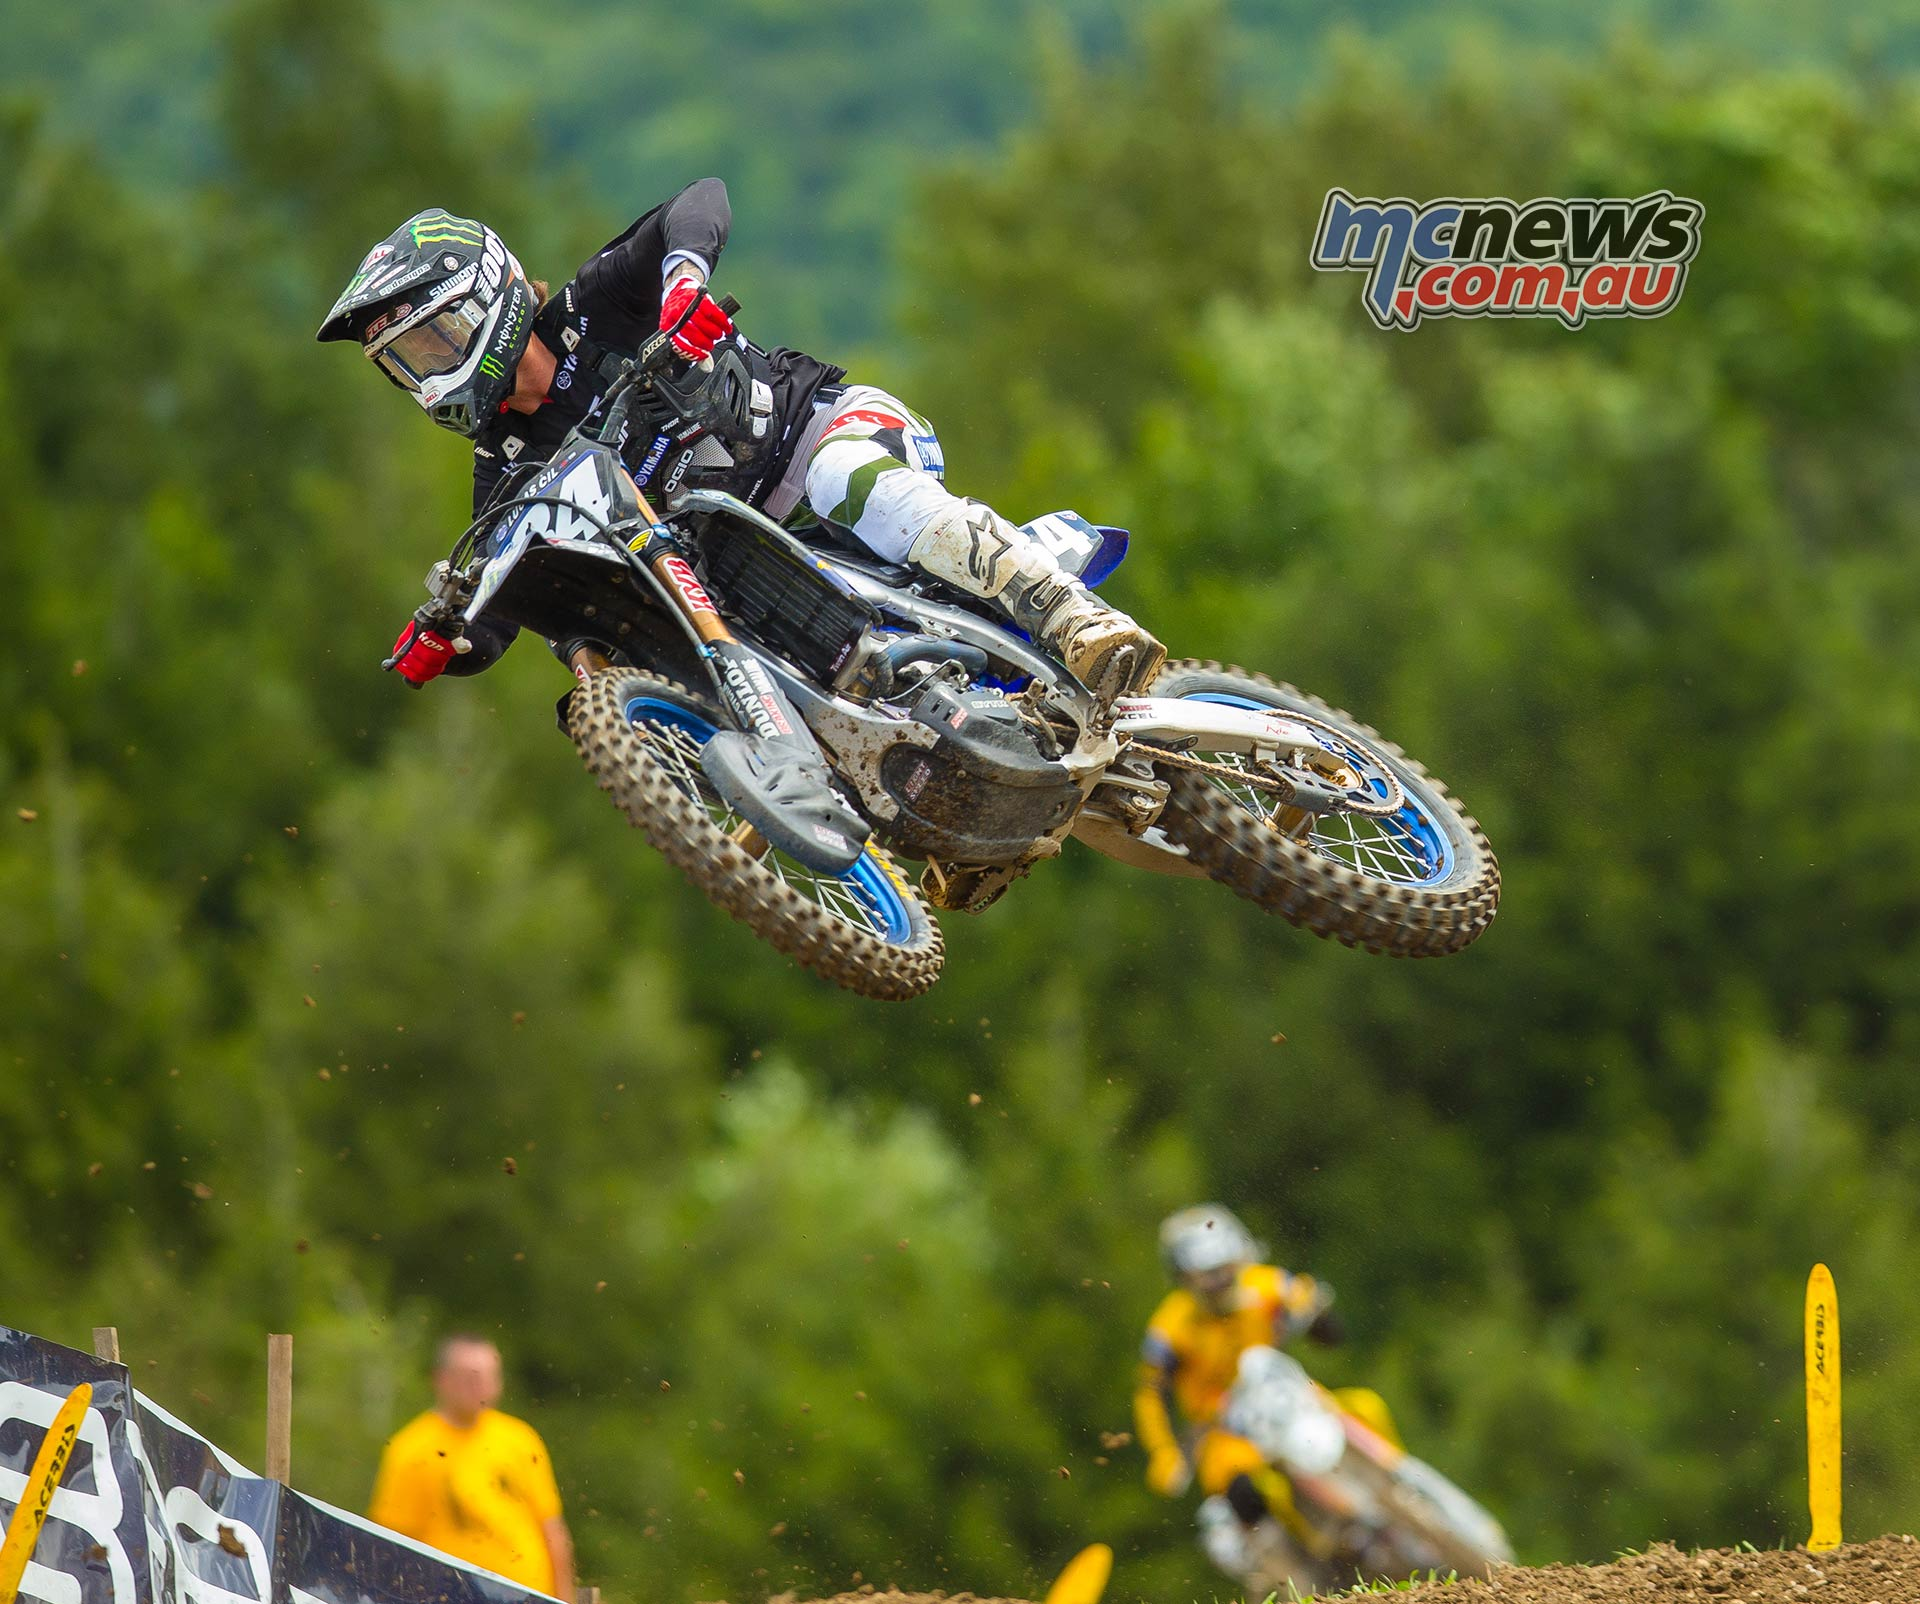 MCNews com au | Motorcycle News, Sport and Reviews | Page 5